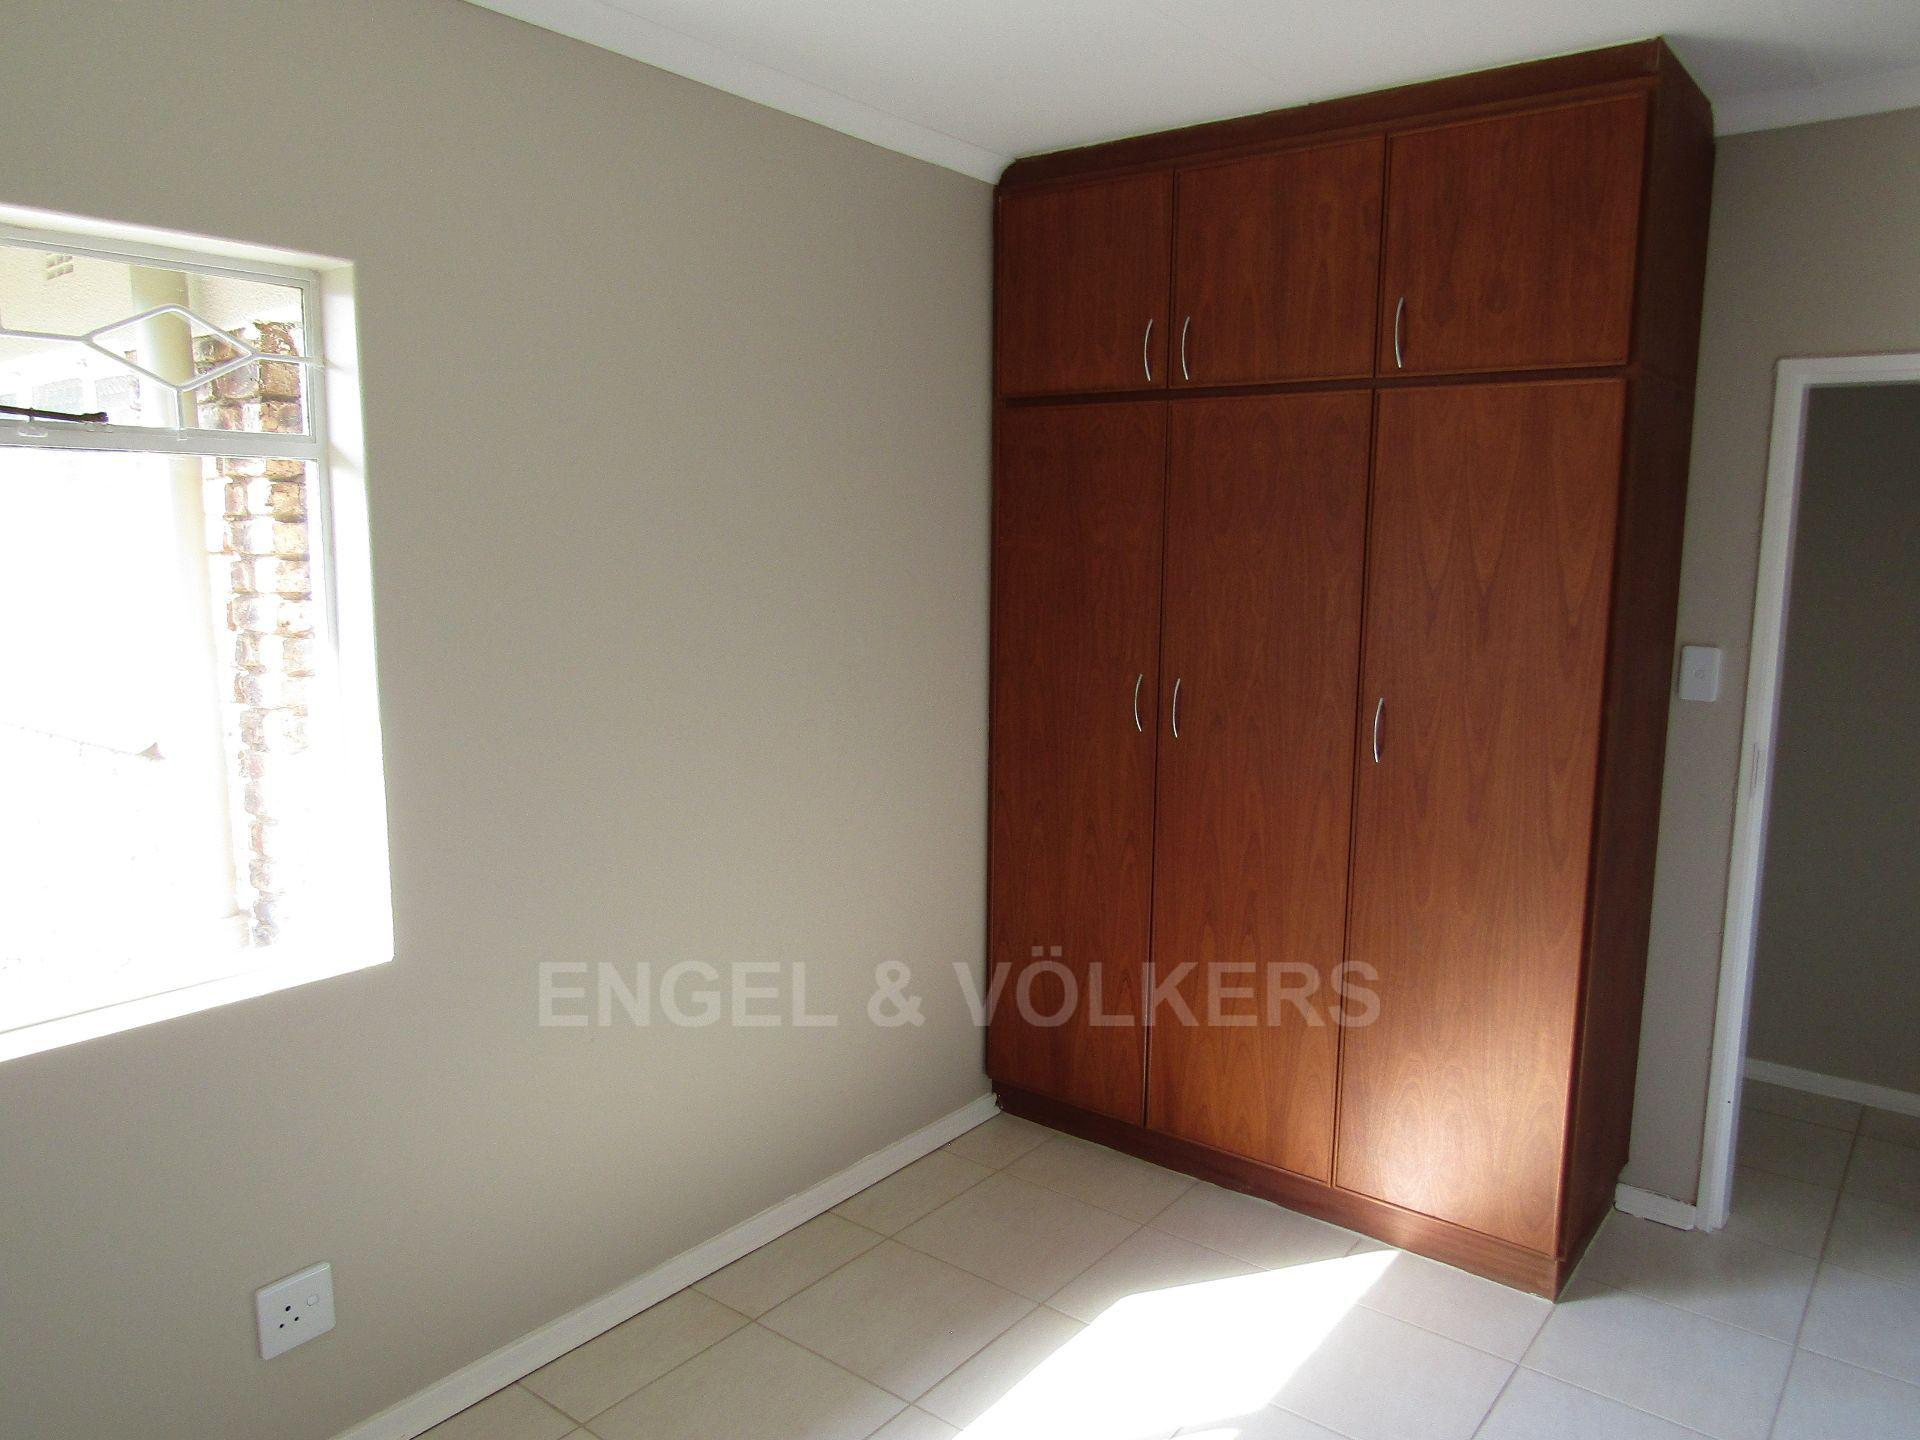 Potchefstroom Central property for sale. Ref No: 13522202. Picture no 13